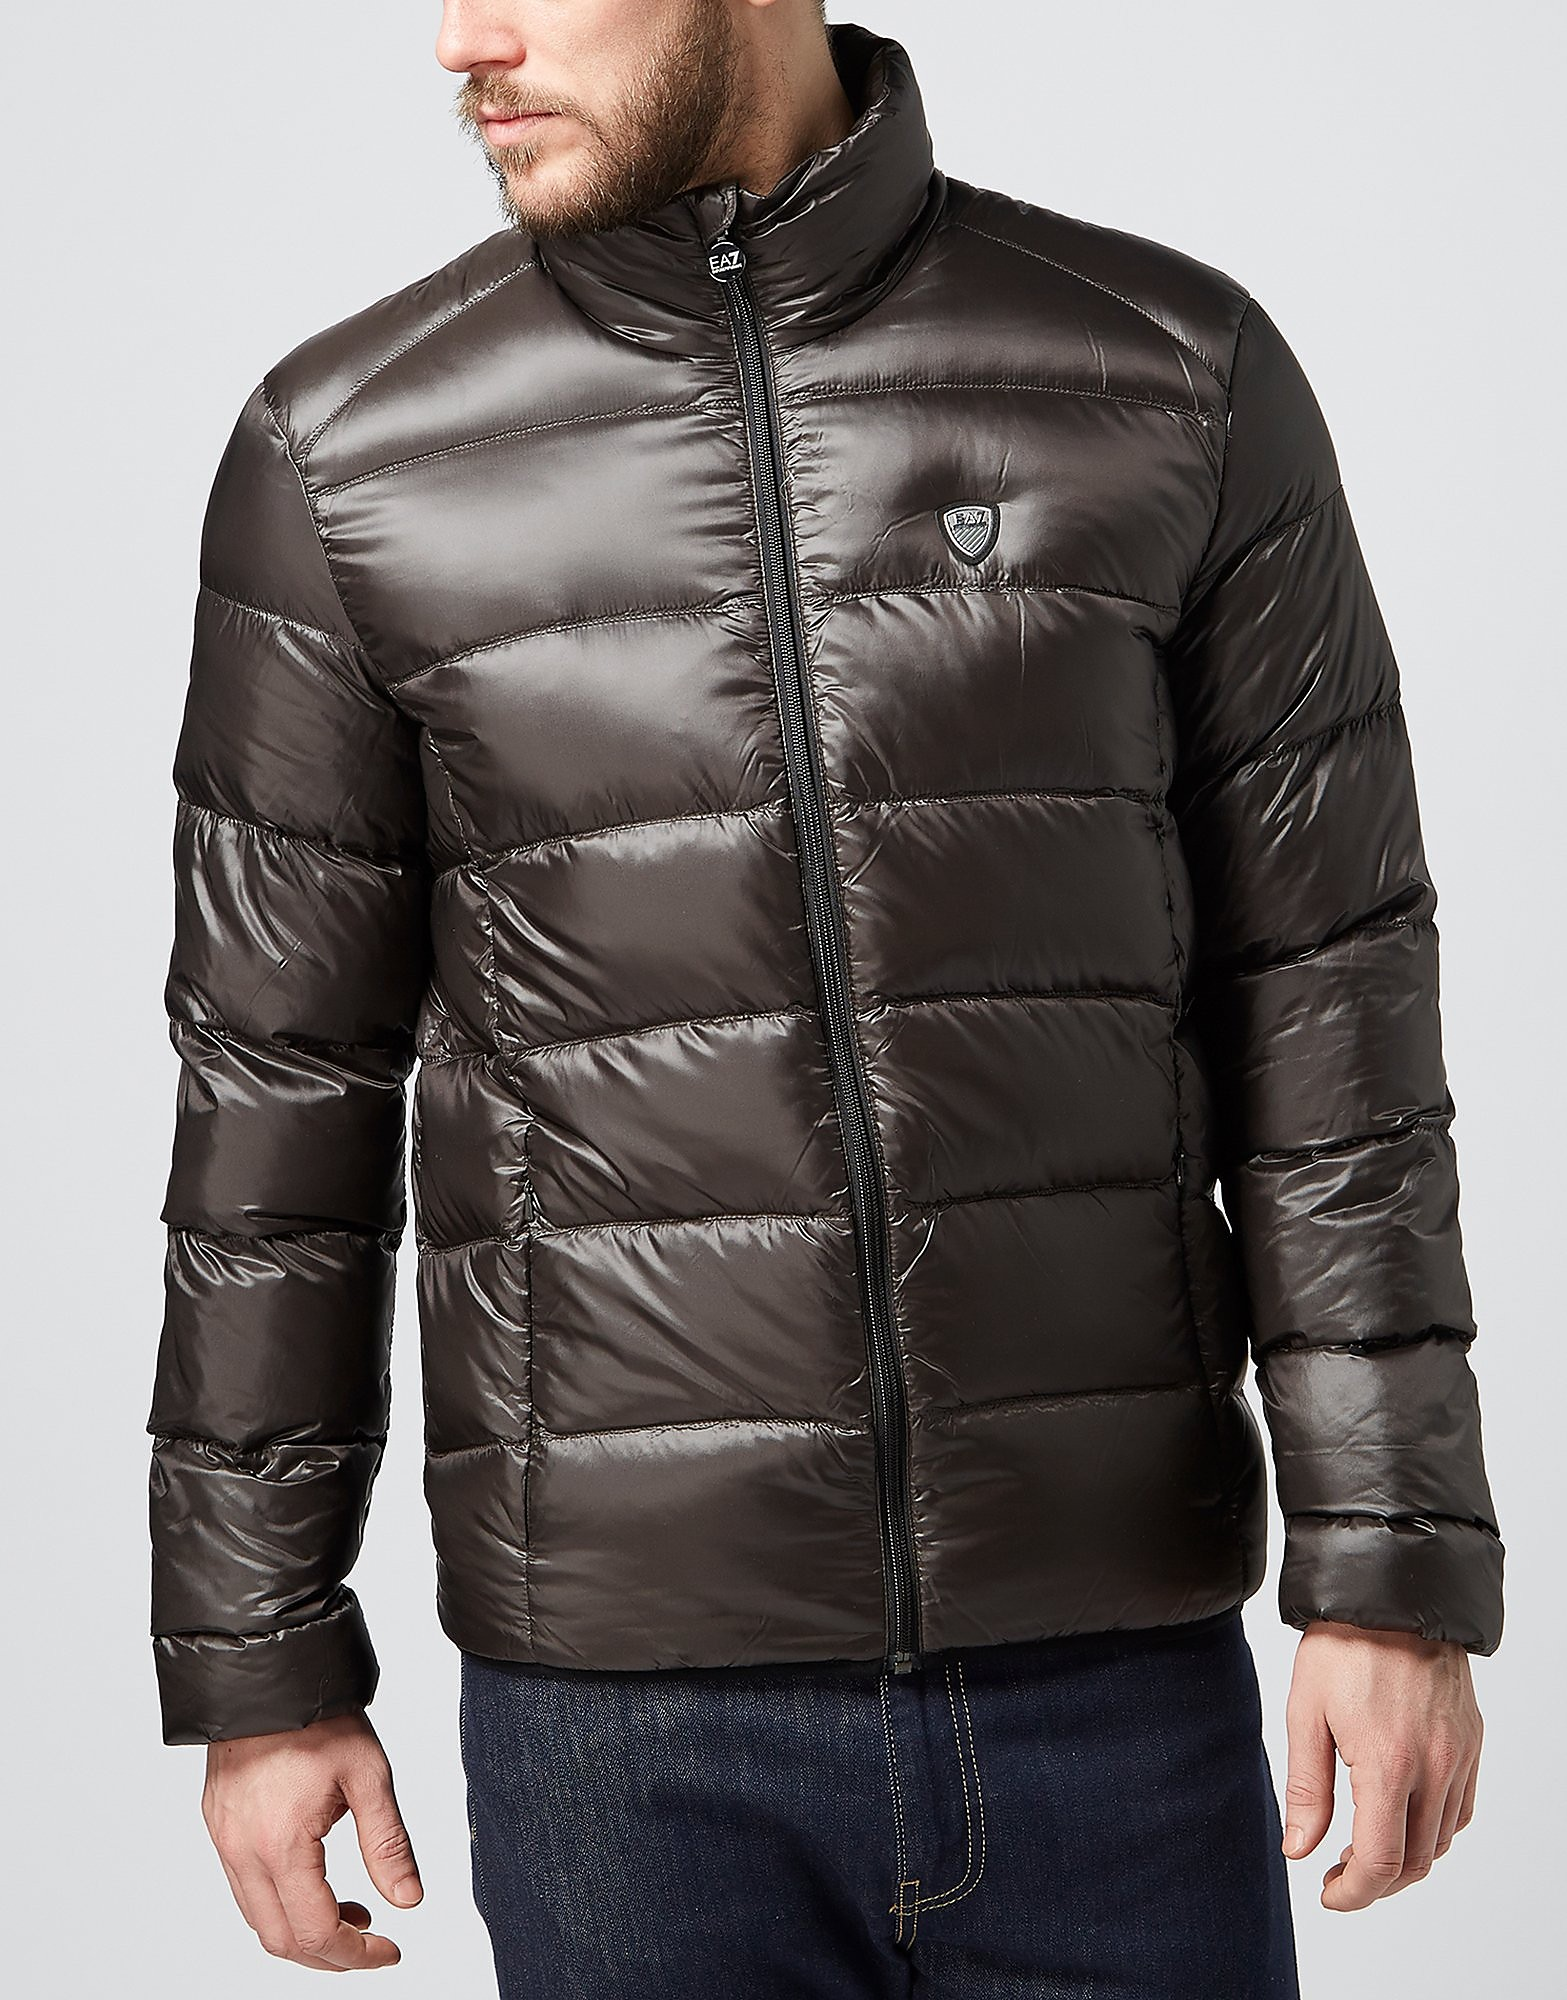 Emporio Armani EA7 Golf Duck Down Jacket